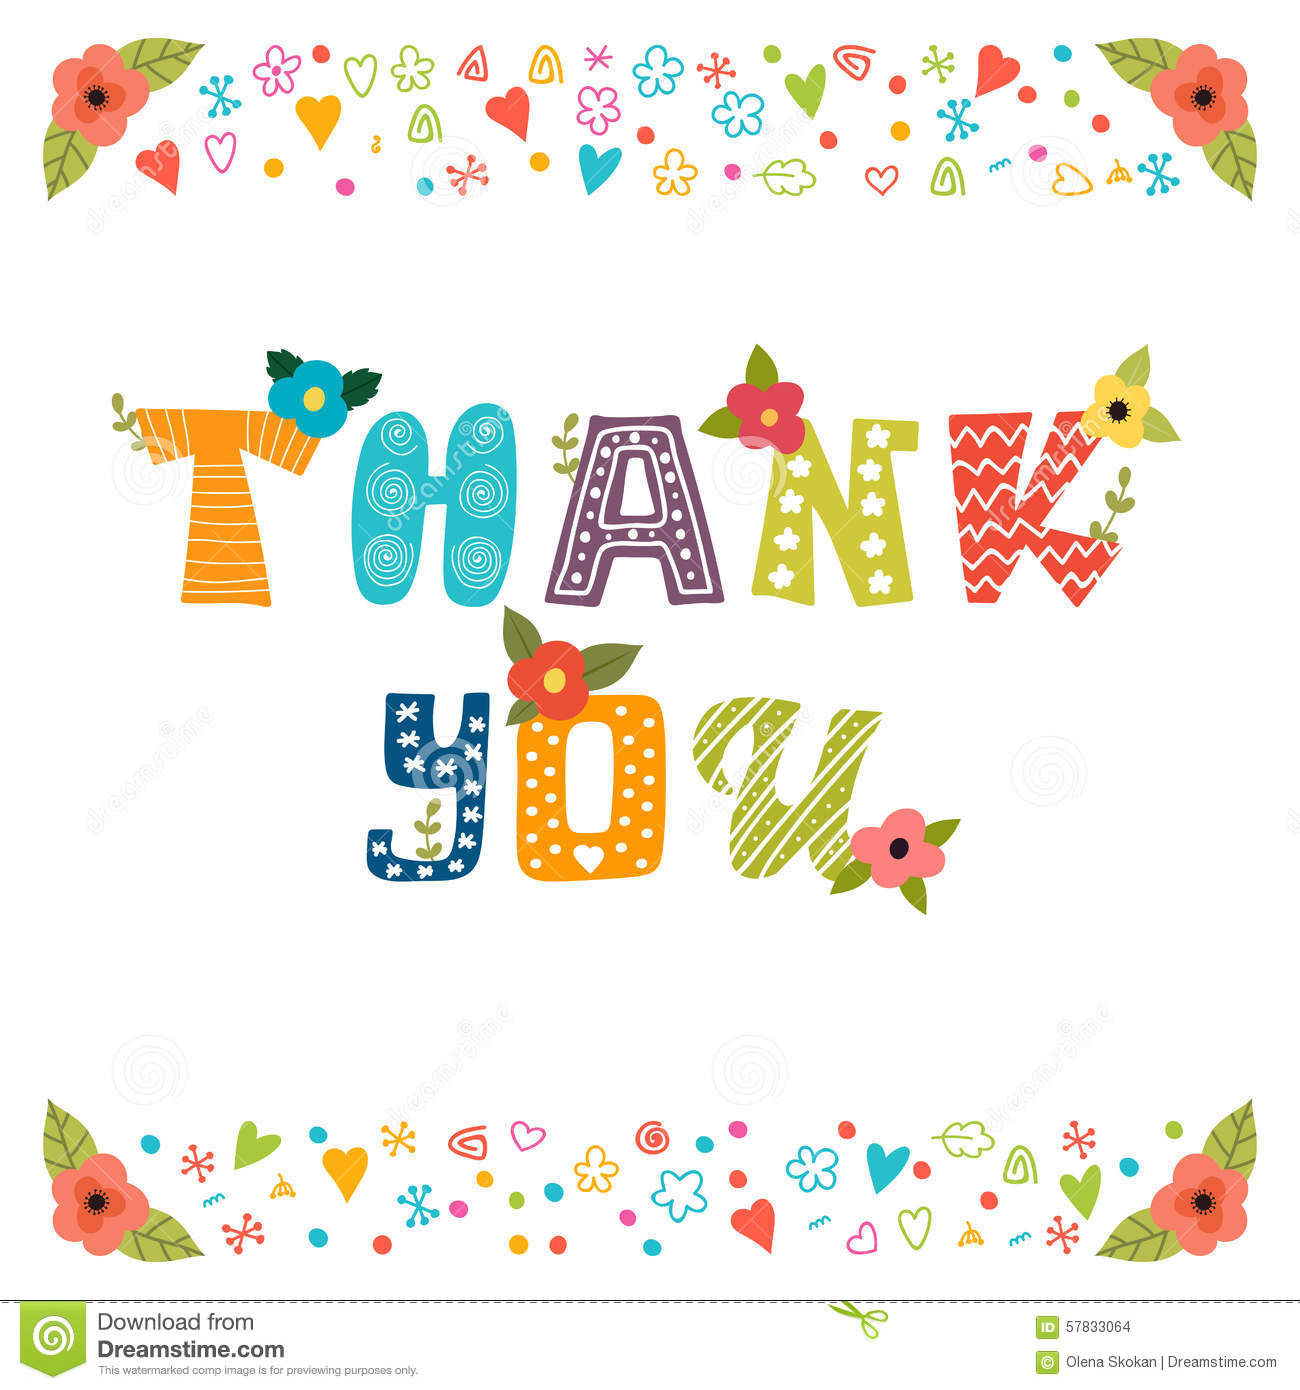 Thank You Card Design Cute Greeting Card With Flowers